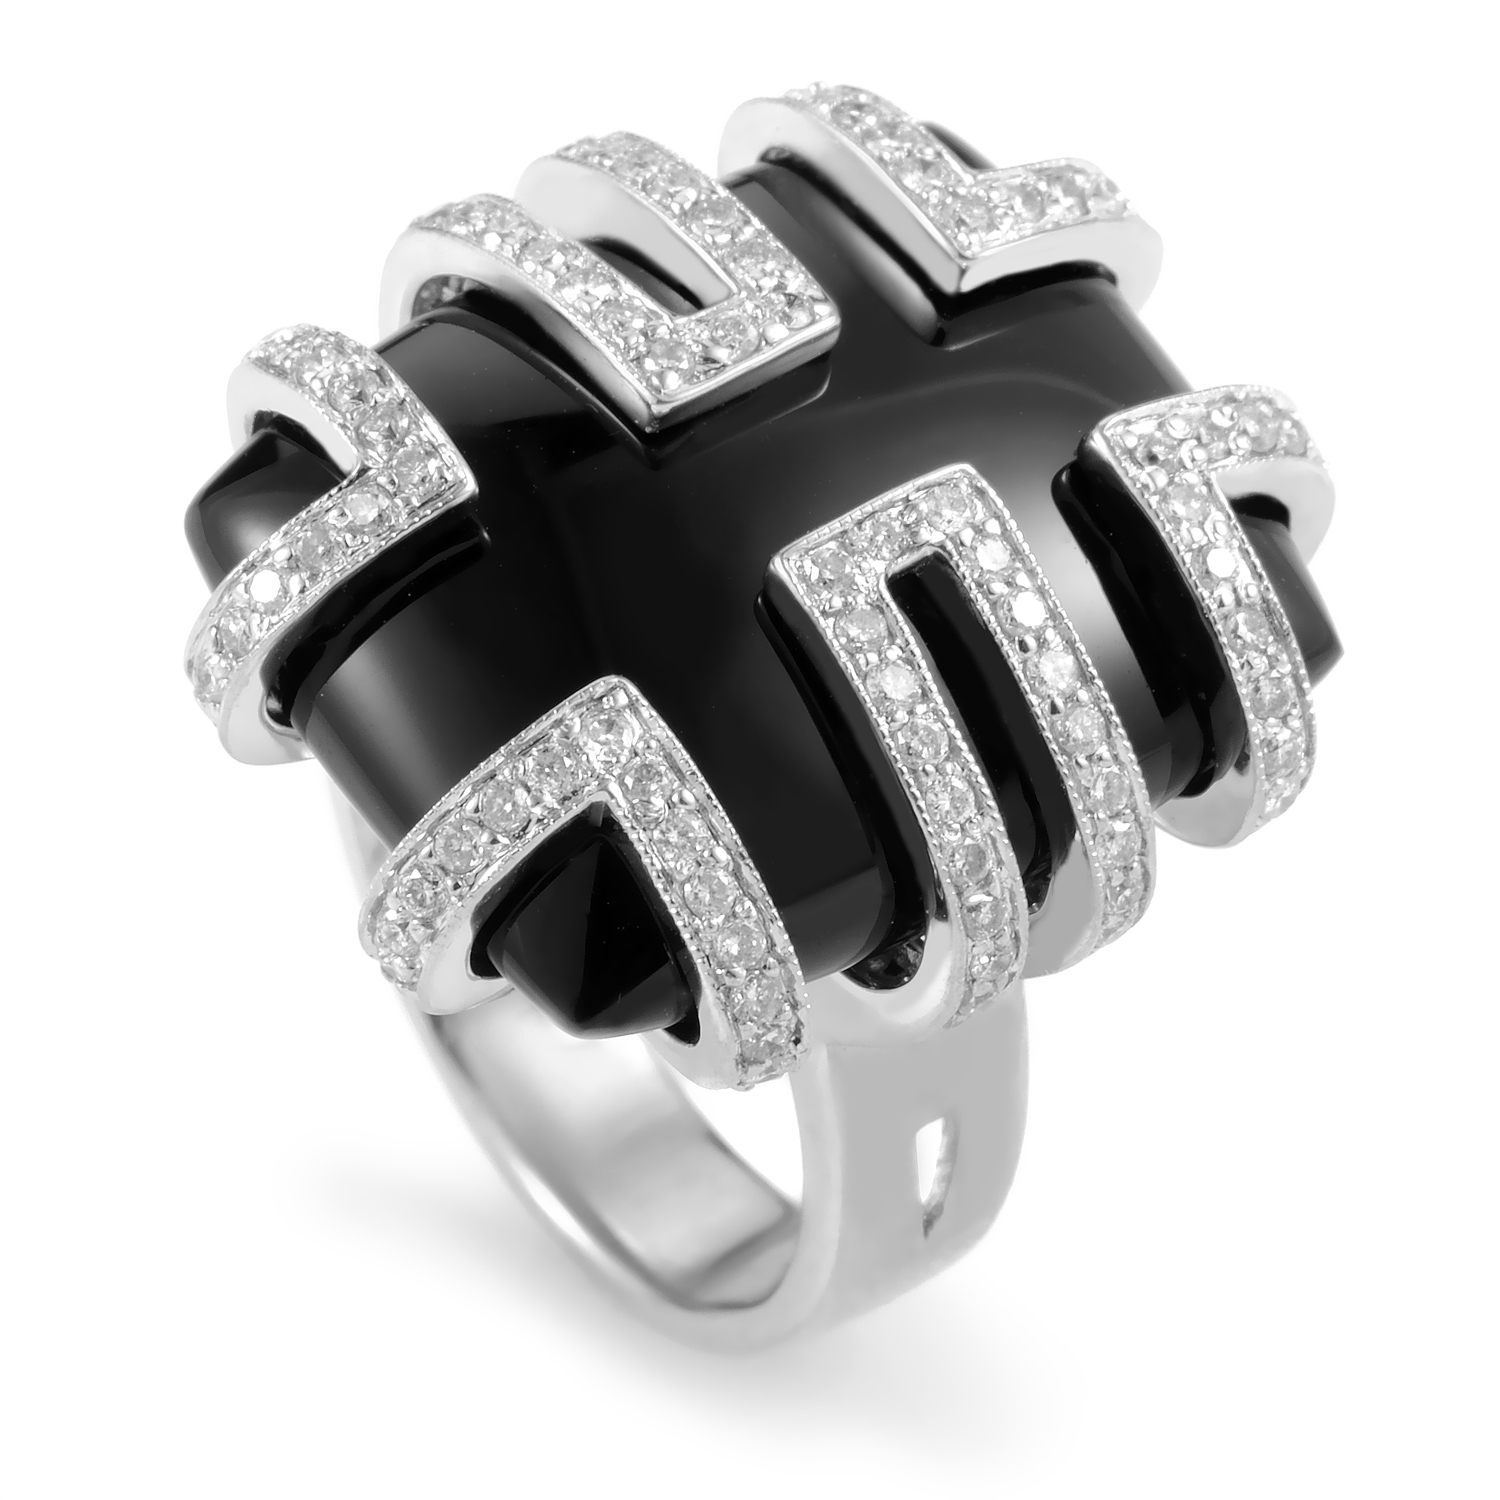 Women's 18K White Gold Diamond & Onyx Ring MFC03-061316